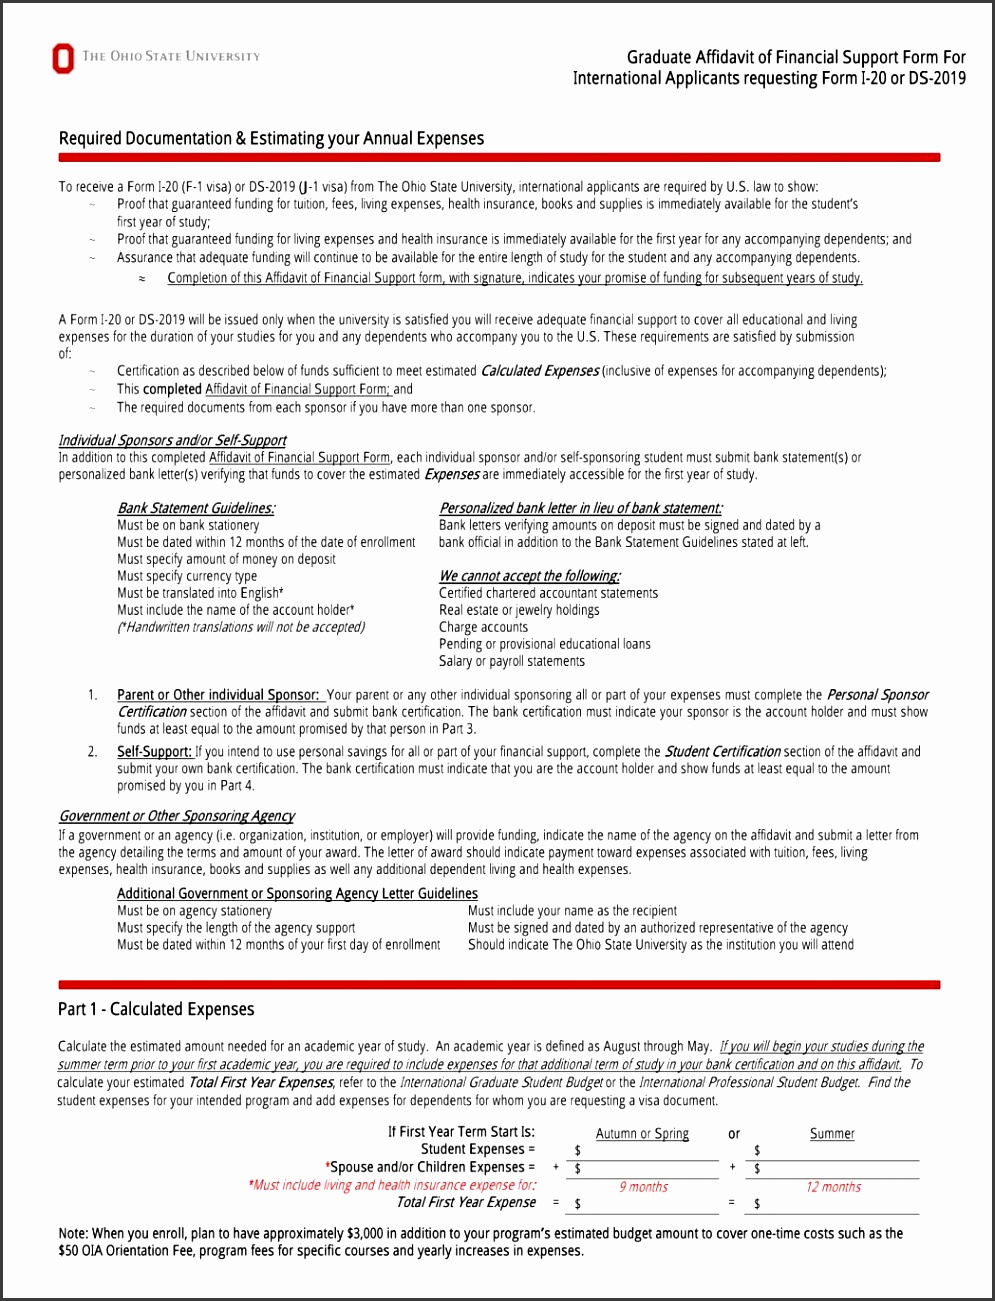 Fee Proposal Letter Example Financial Statement Form Sample - Find And  Download Free Form Templates And Tested Template Designs.